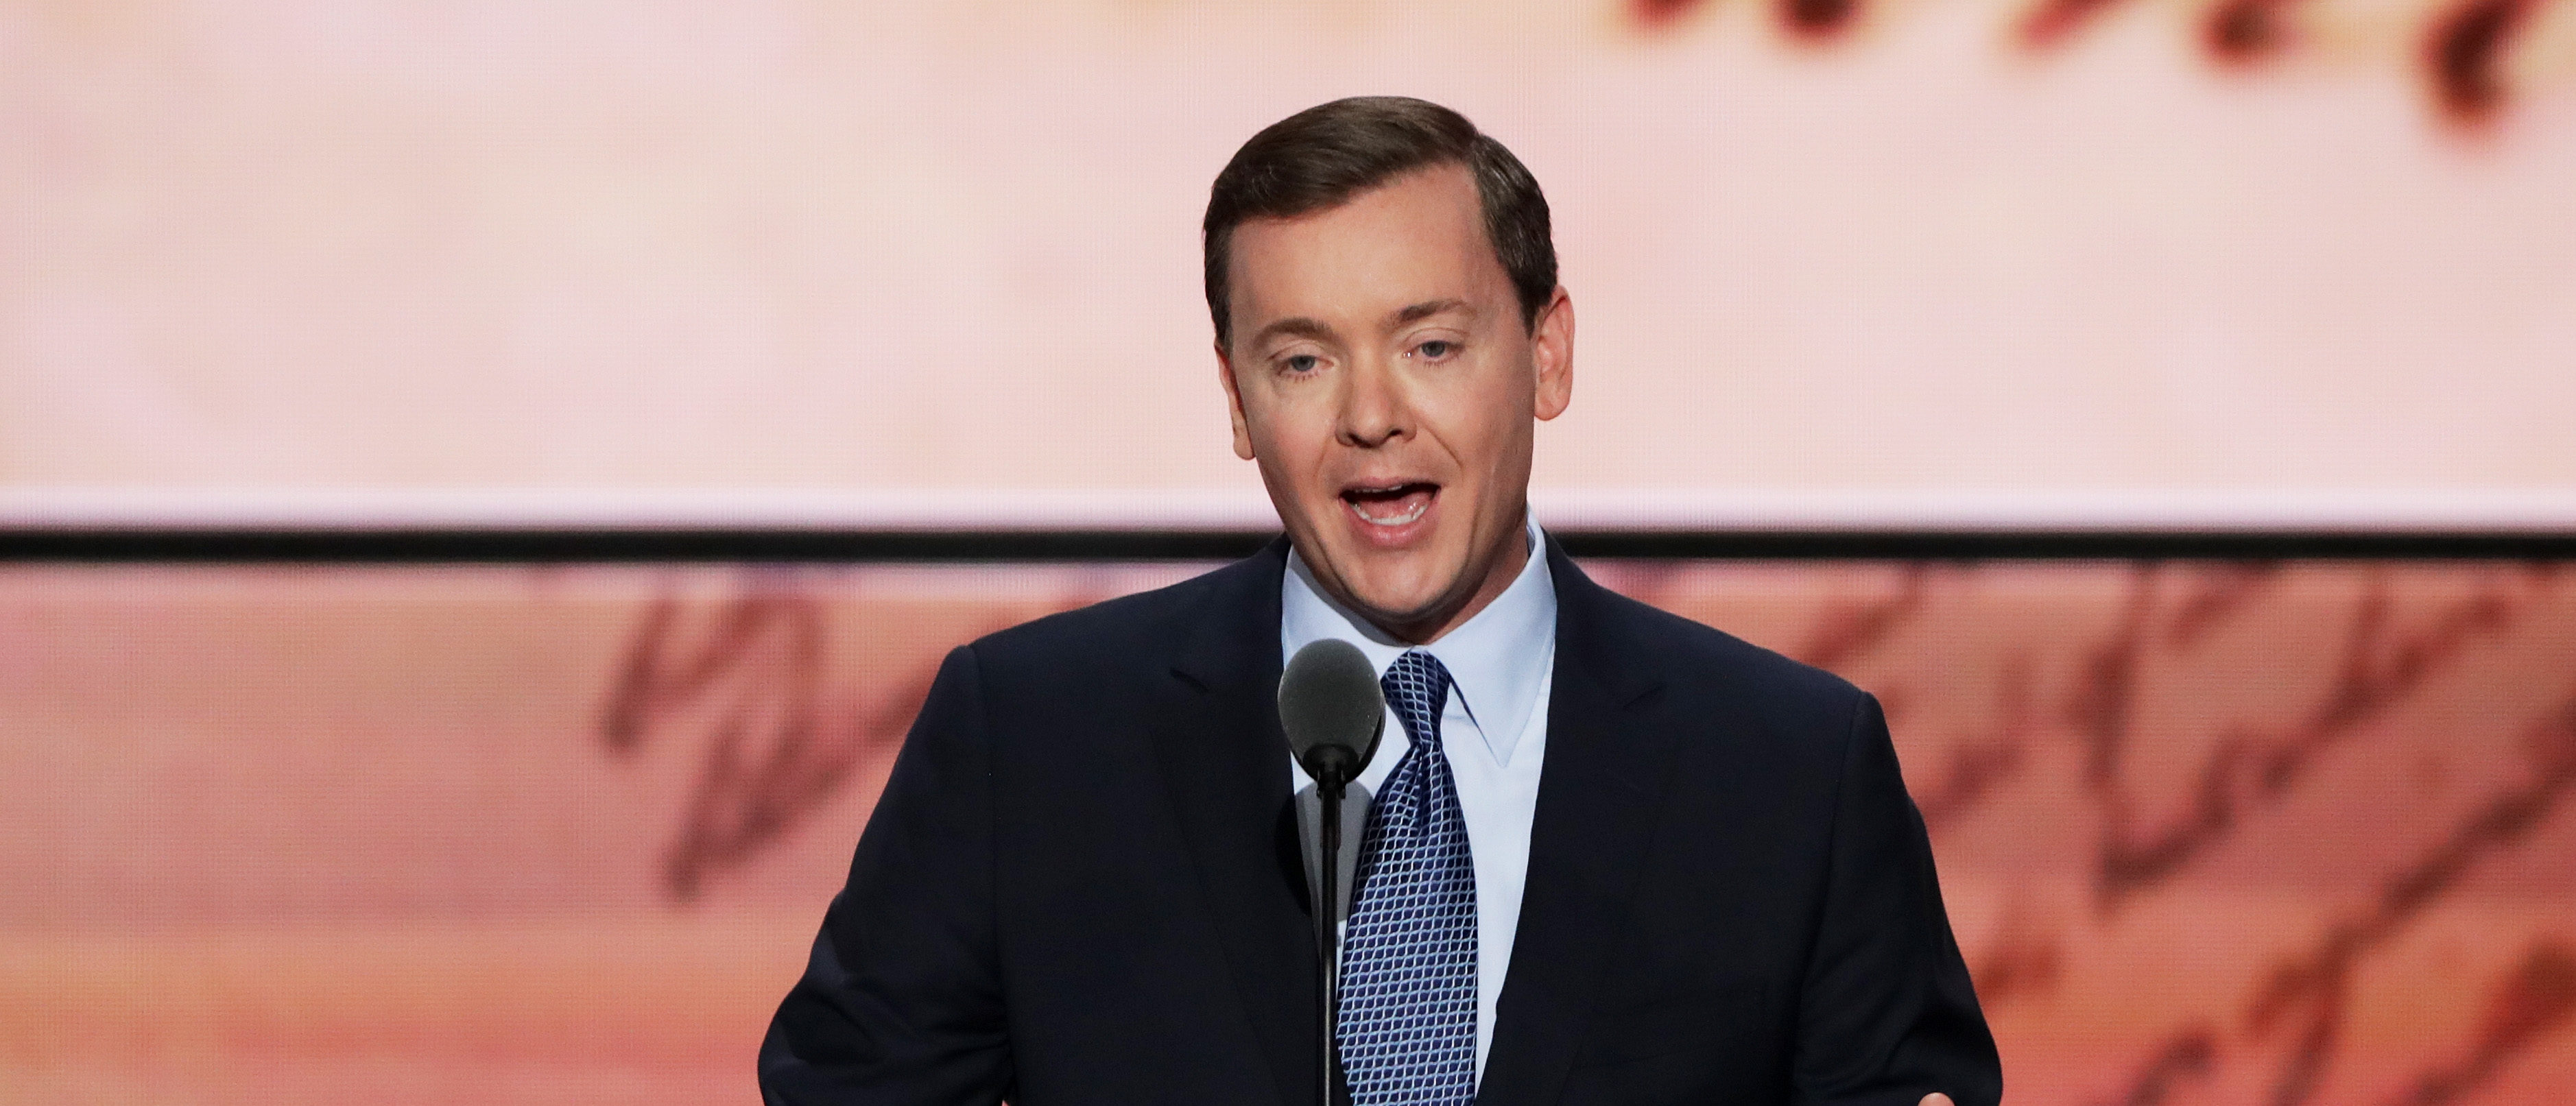 CLEVELAND, OH - JULY 19: Chris Cox, executive vice president of the National Rifle Association, delivers a speech on the second day of the Republican National Convention on July 19, 2016 at the Quicken Loans Arena in Cleveland, Ohio. Republican presidential candidate Donald Trump received the number of votes needed to secure the party's nomination. An estimated 50,000 people are expected in Cleveland, including hundreds of protesters and members of the media. The four-day Republican National Convention kicked off on July 18. (Photo by Alex Wong/Getty Images)